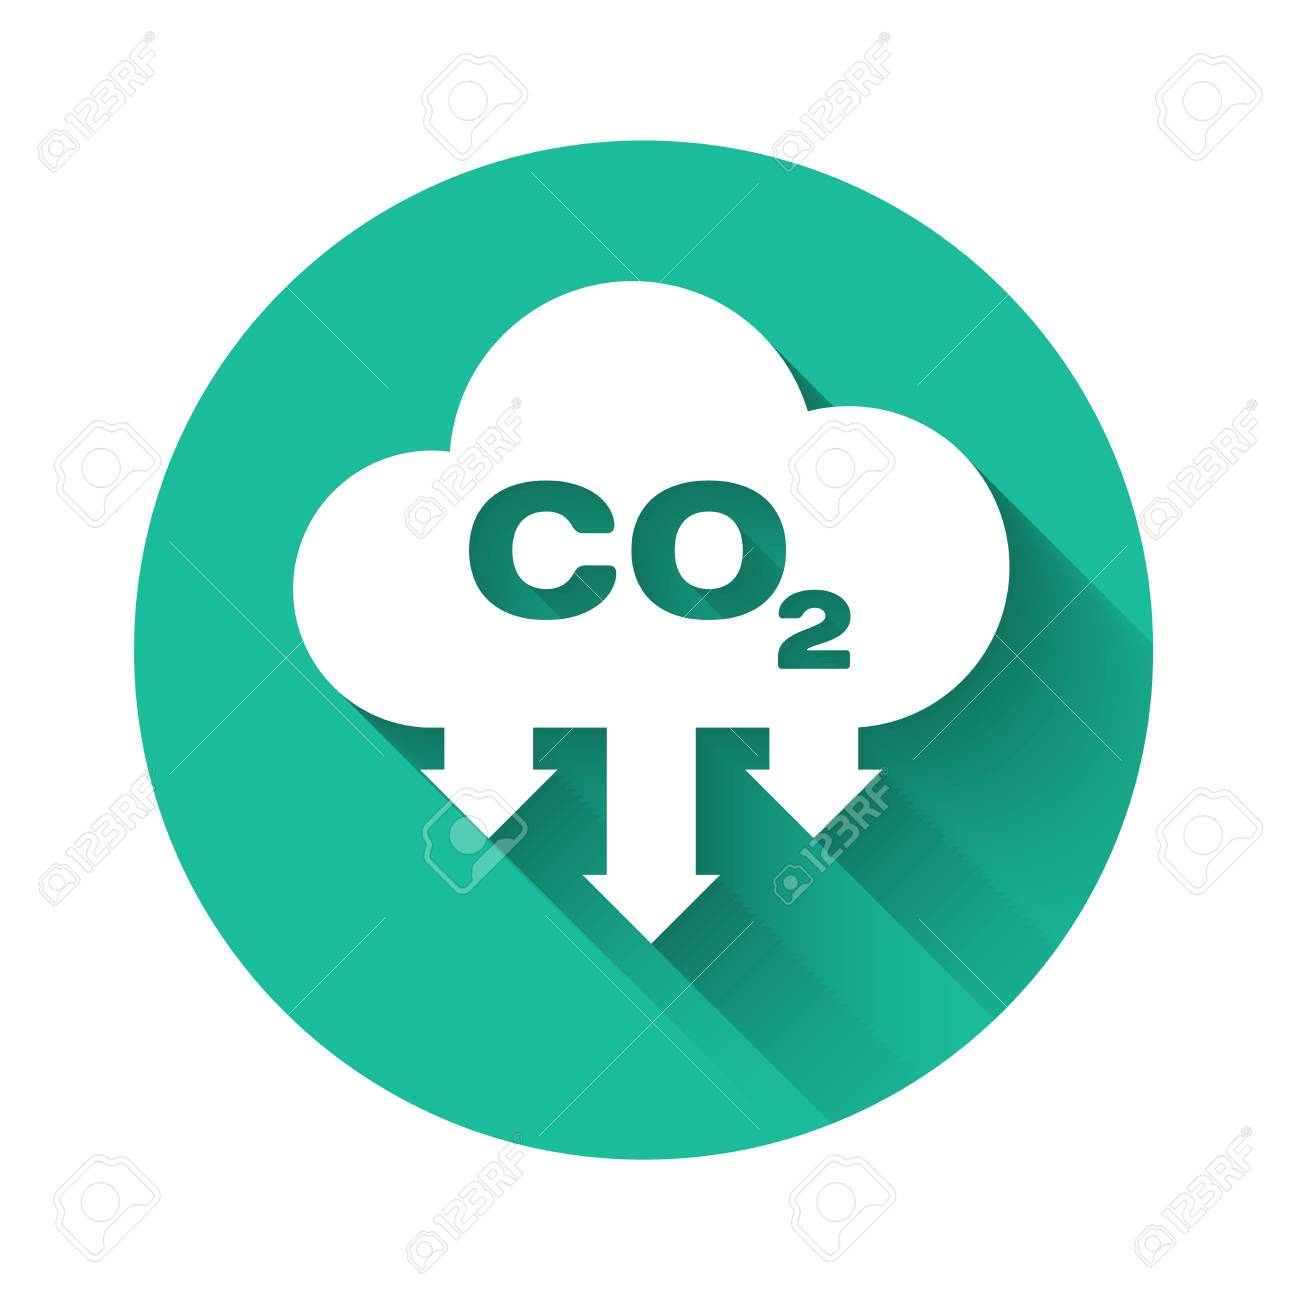 White CO2 emissions in cloud icon isolated with long shadow. Carbon dioxide formula symbol, smog pollution concept, environment concept. Green circle button. Vector Illustration - 122946017